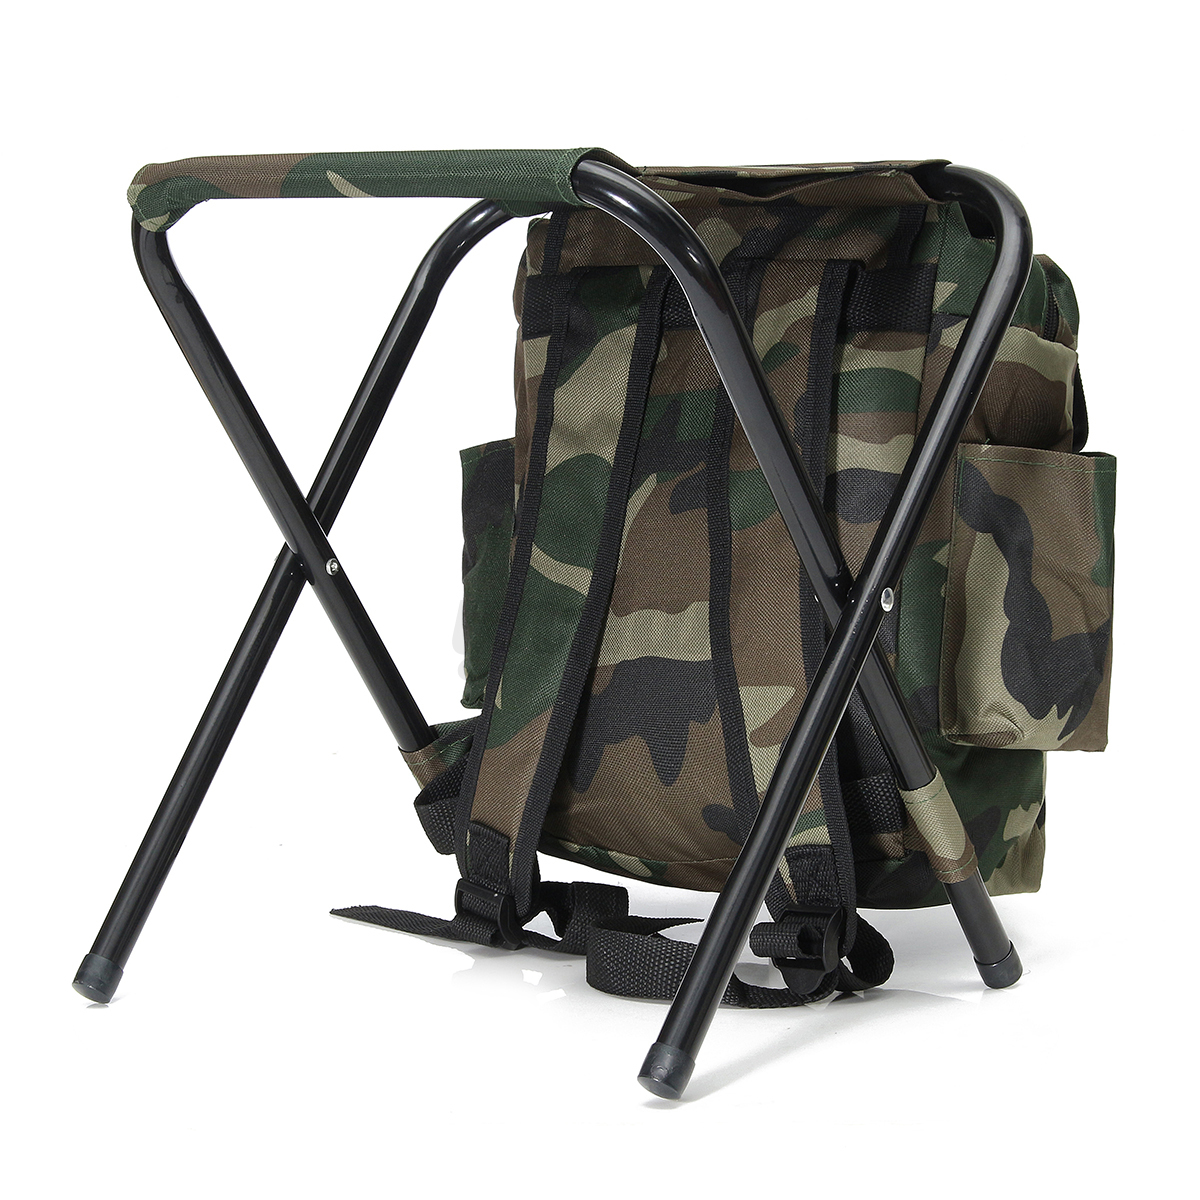 fishing chair rucksack wheelchair in airport foldable stool seat backpack multi function